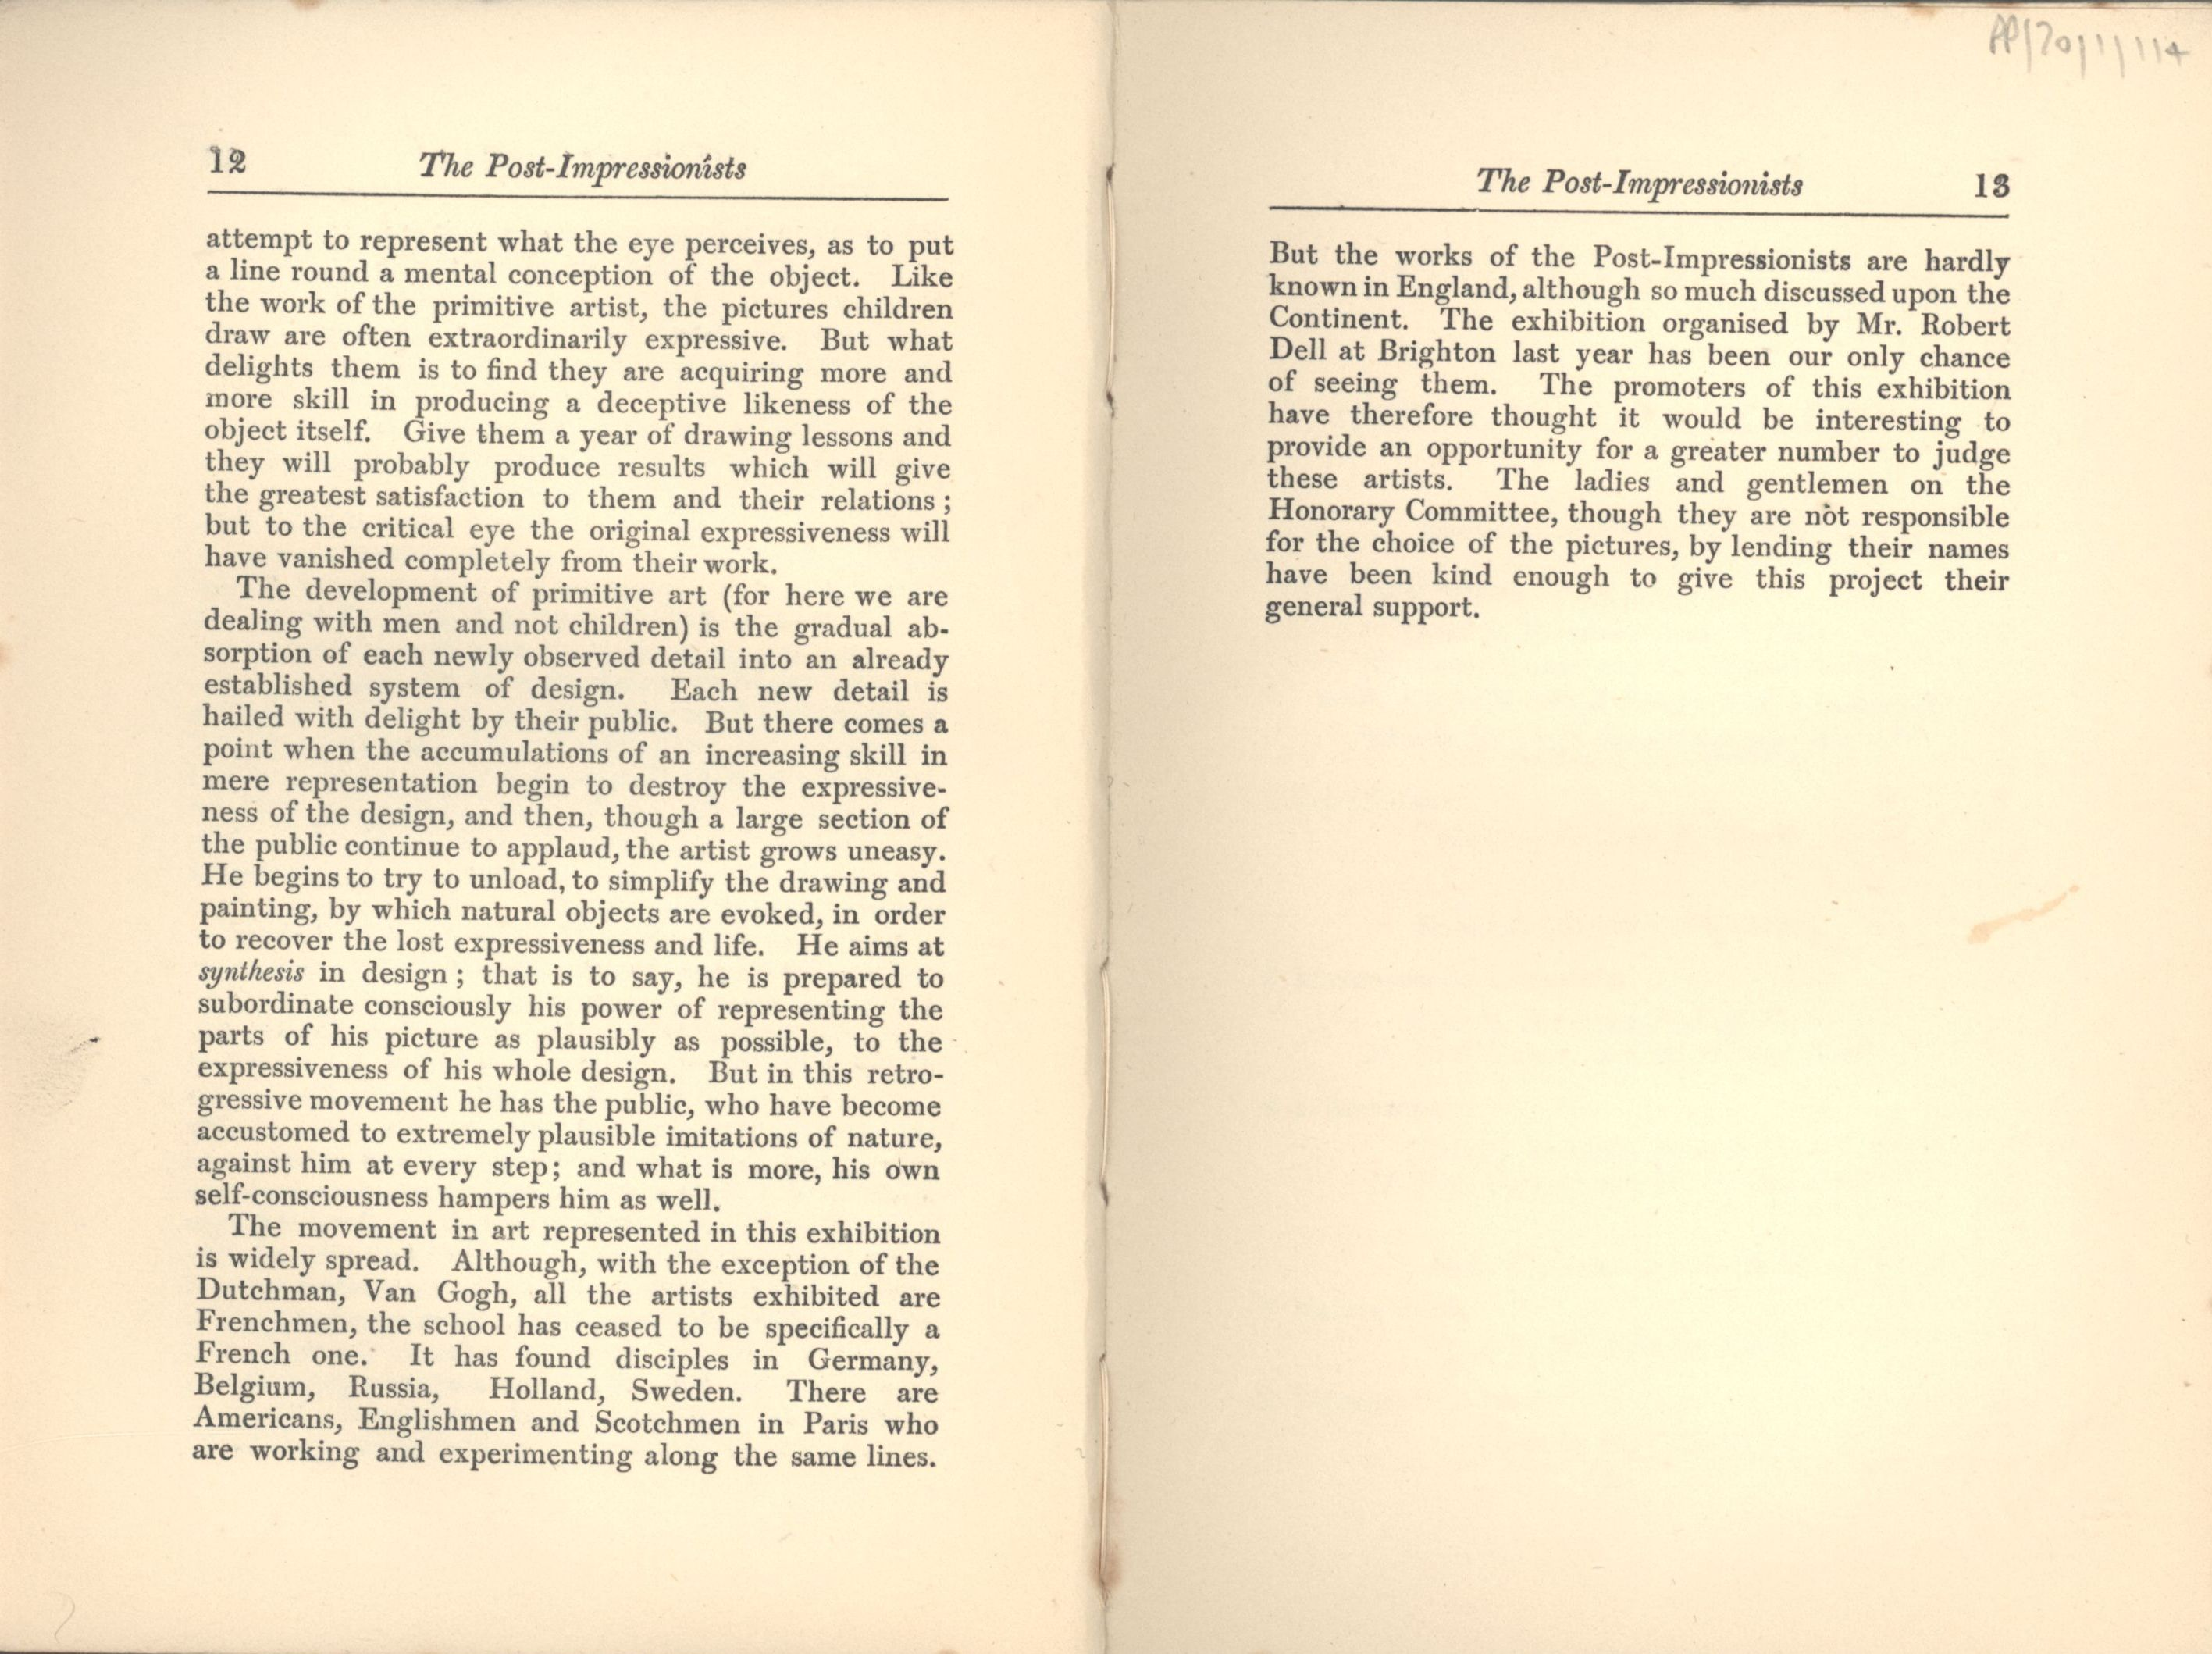 Preface to the 'Manet and the Post-Impressionists' exhibition catalogue. [JMK/PP/70/1]